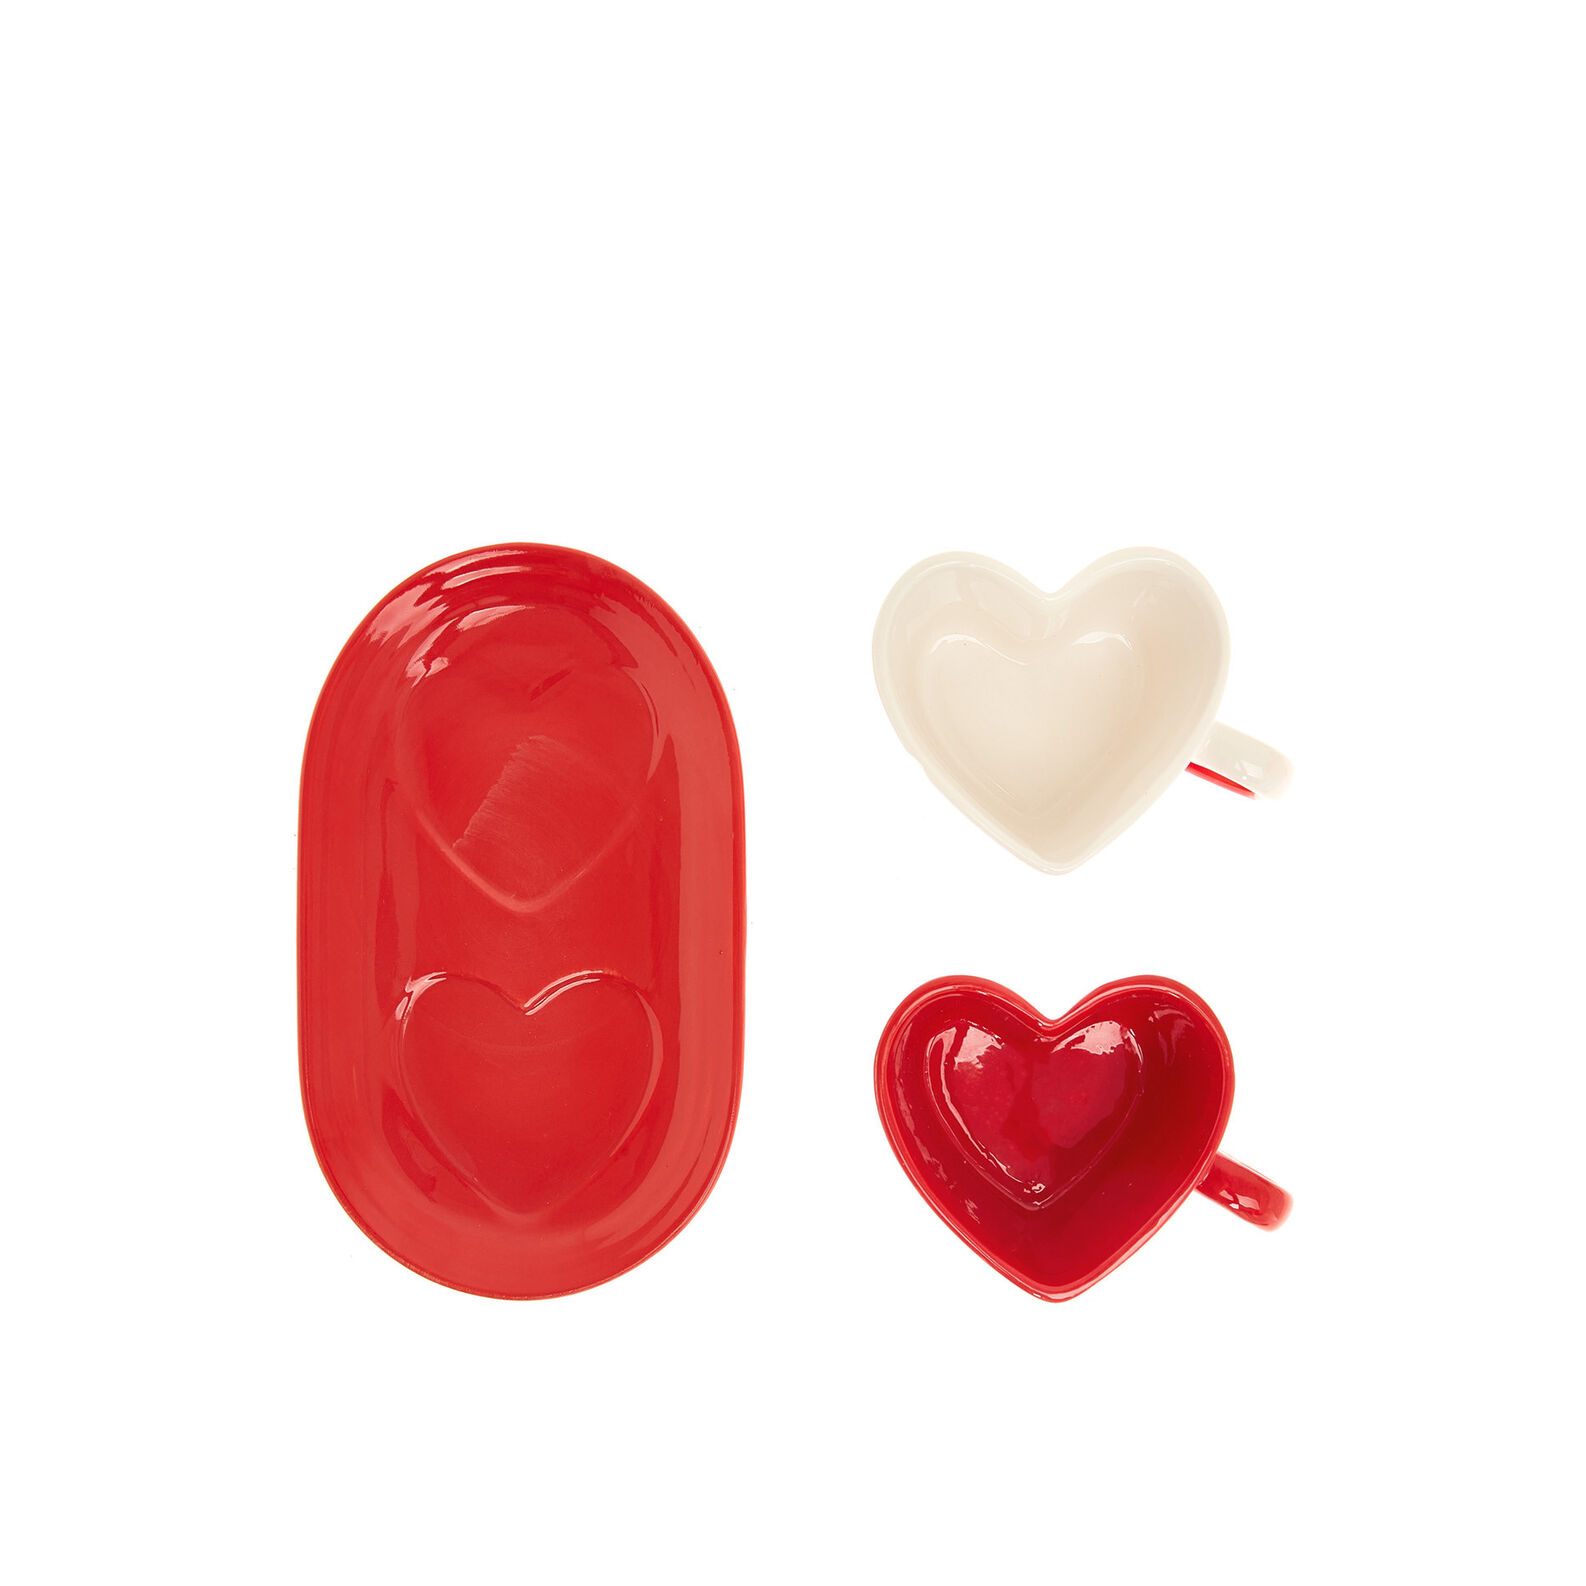 Heart-shaped ceramic coffee cup